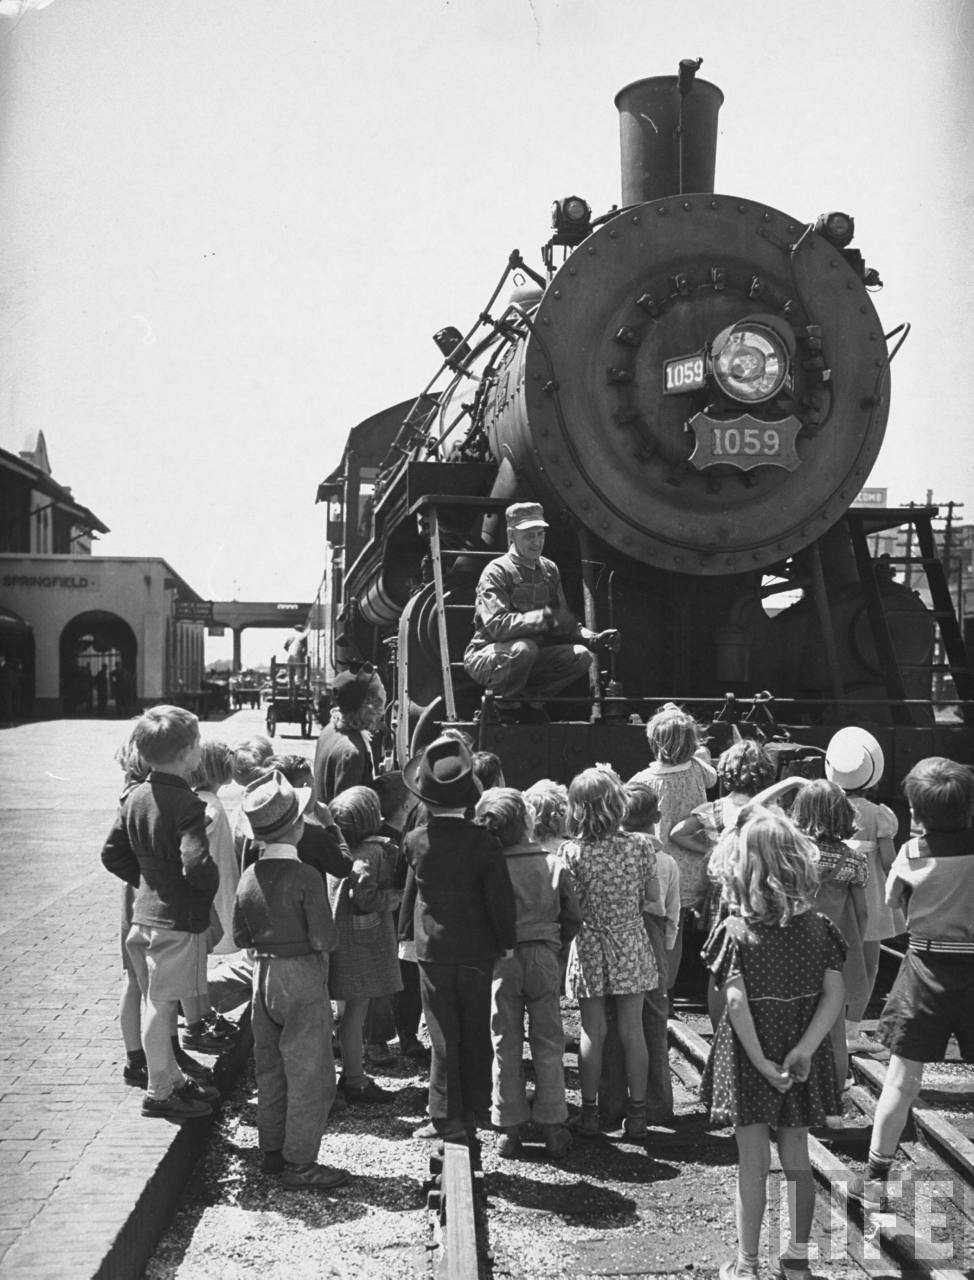 A view of a class learning about trains first hand at a railroad station.